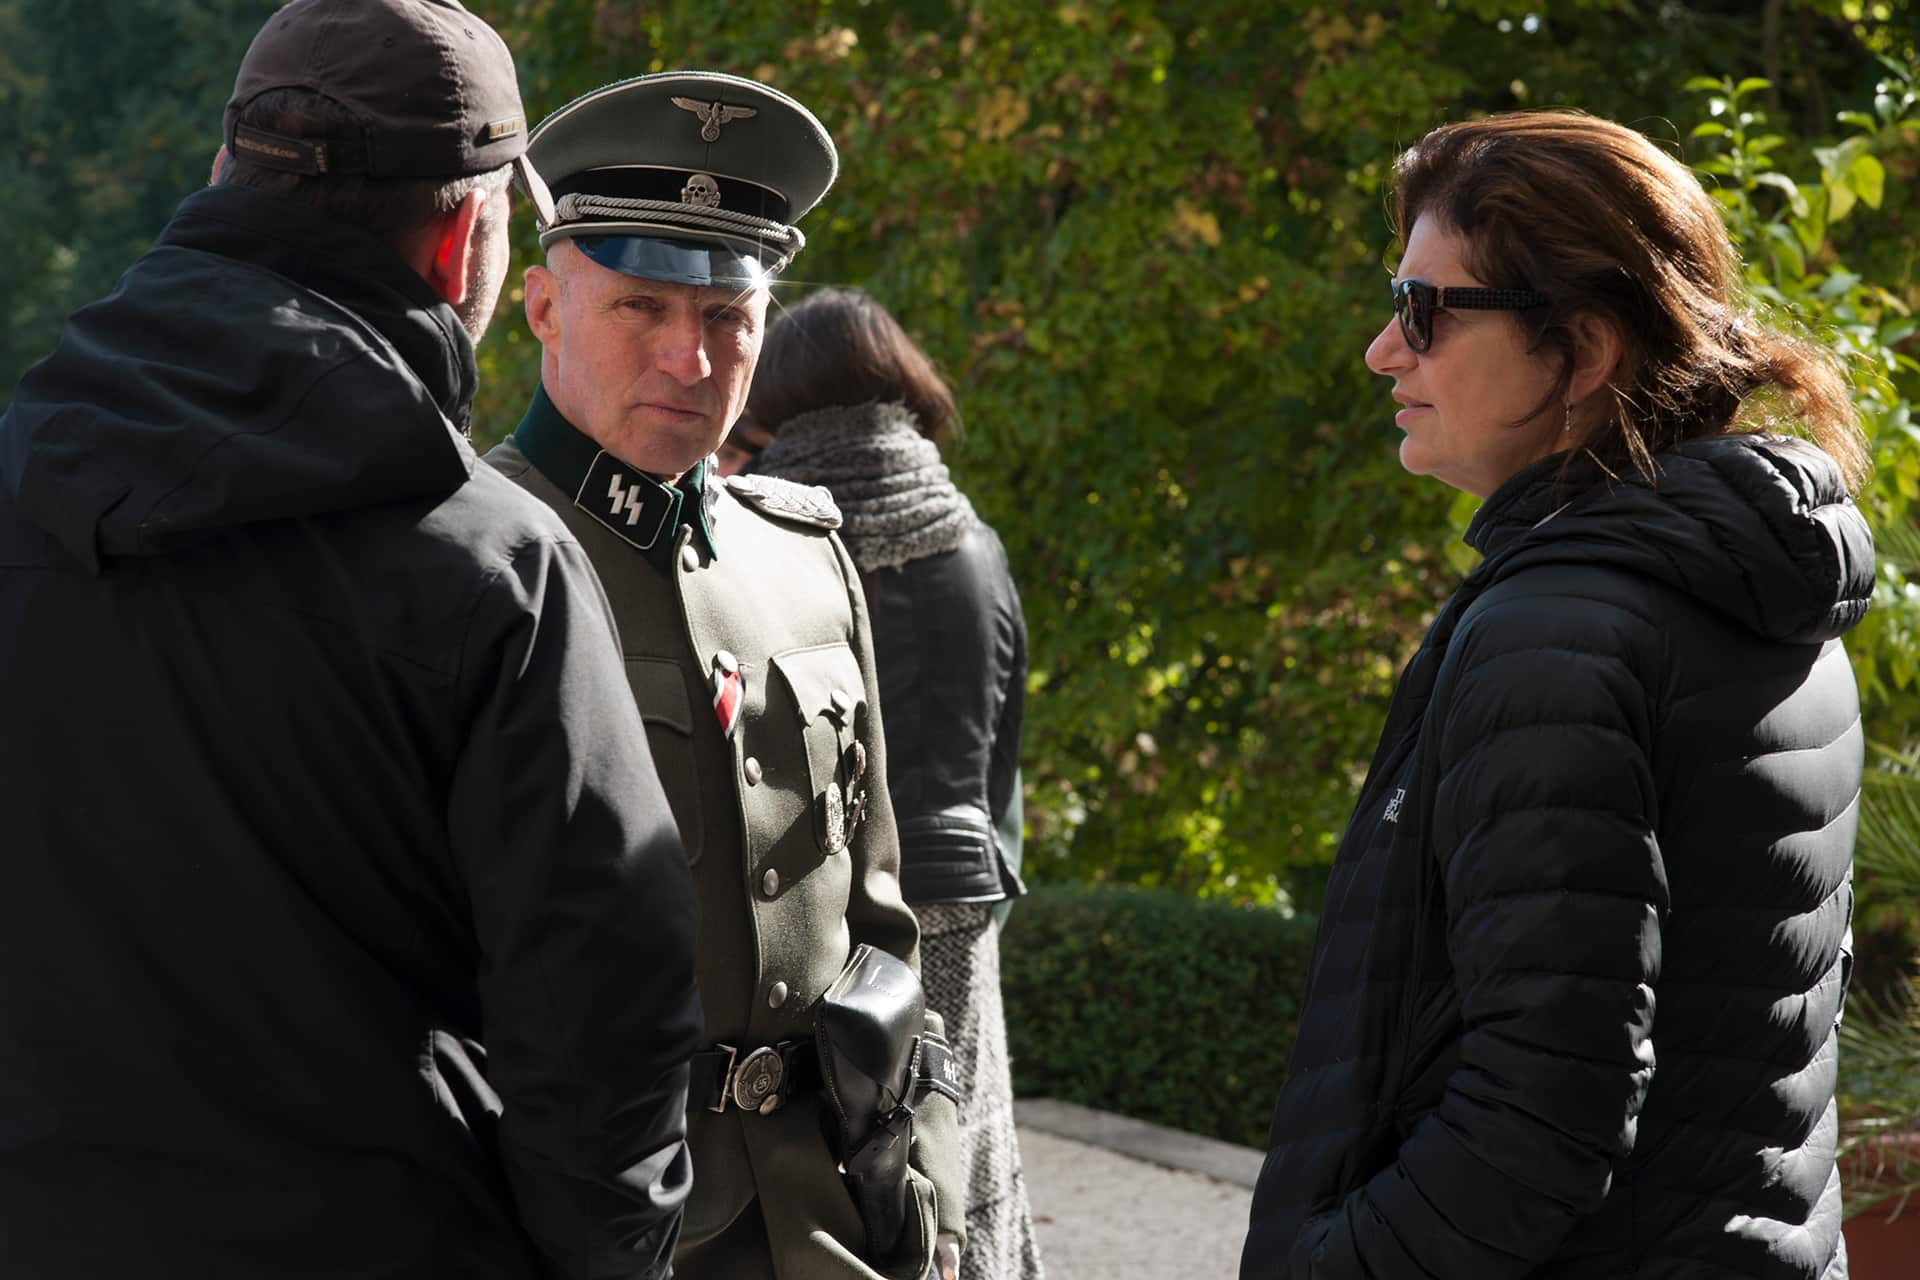 Behind the scenes on the set of X Company Season 3 with Co-Producer Ildikó Kemény and Stunt Coordinator Béla Unger